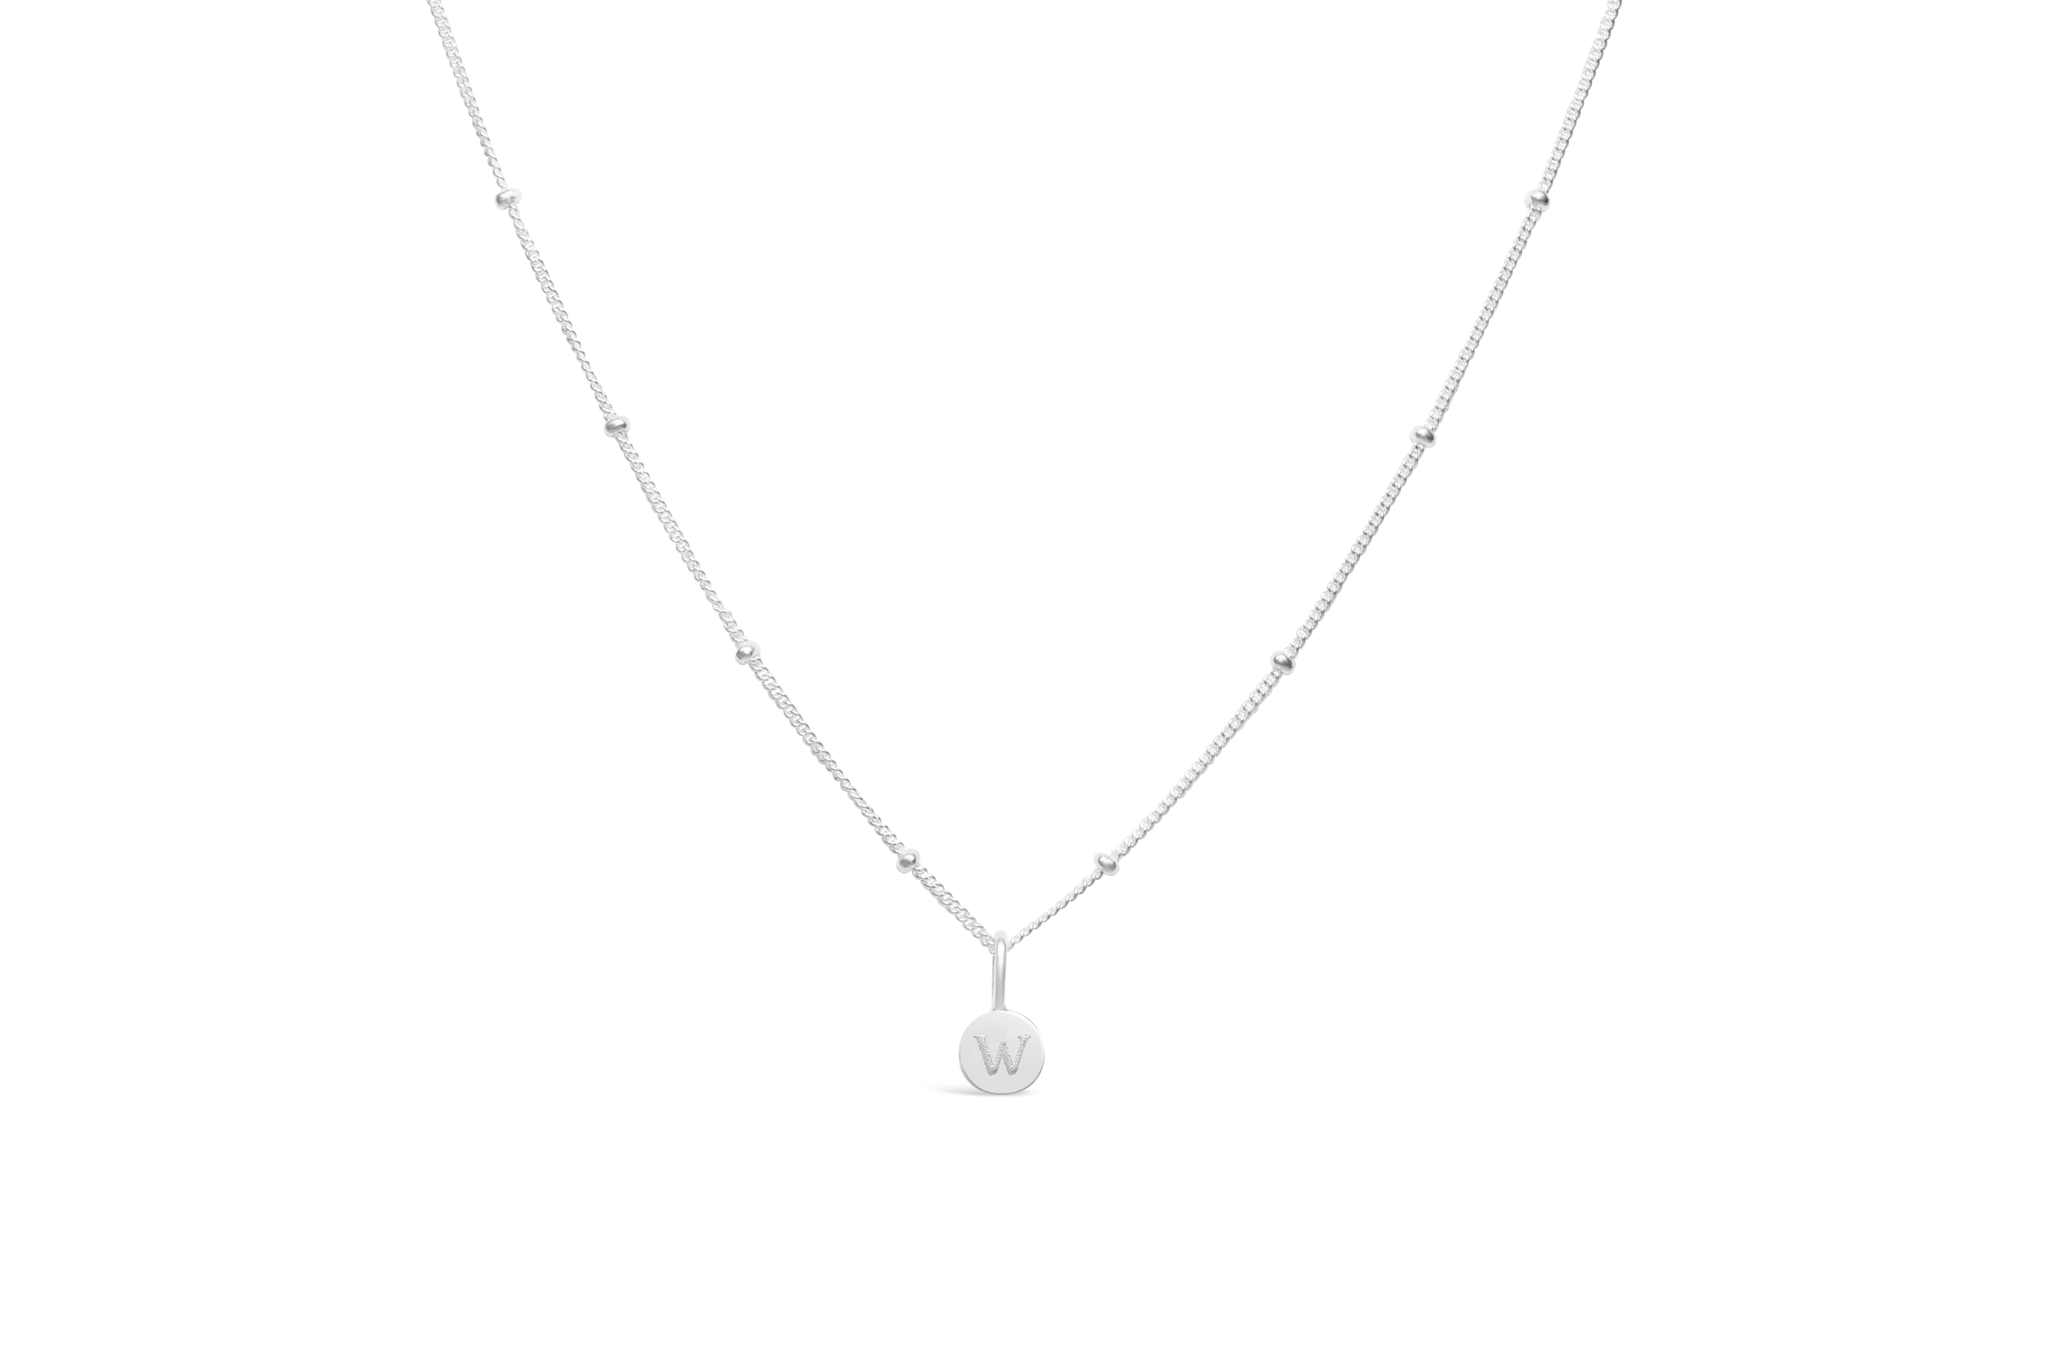 Diamond Cut Love Letter Necklace - W Sterling Silver